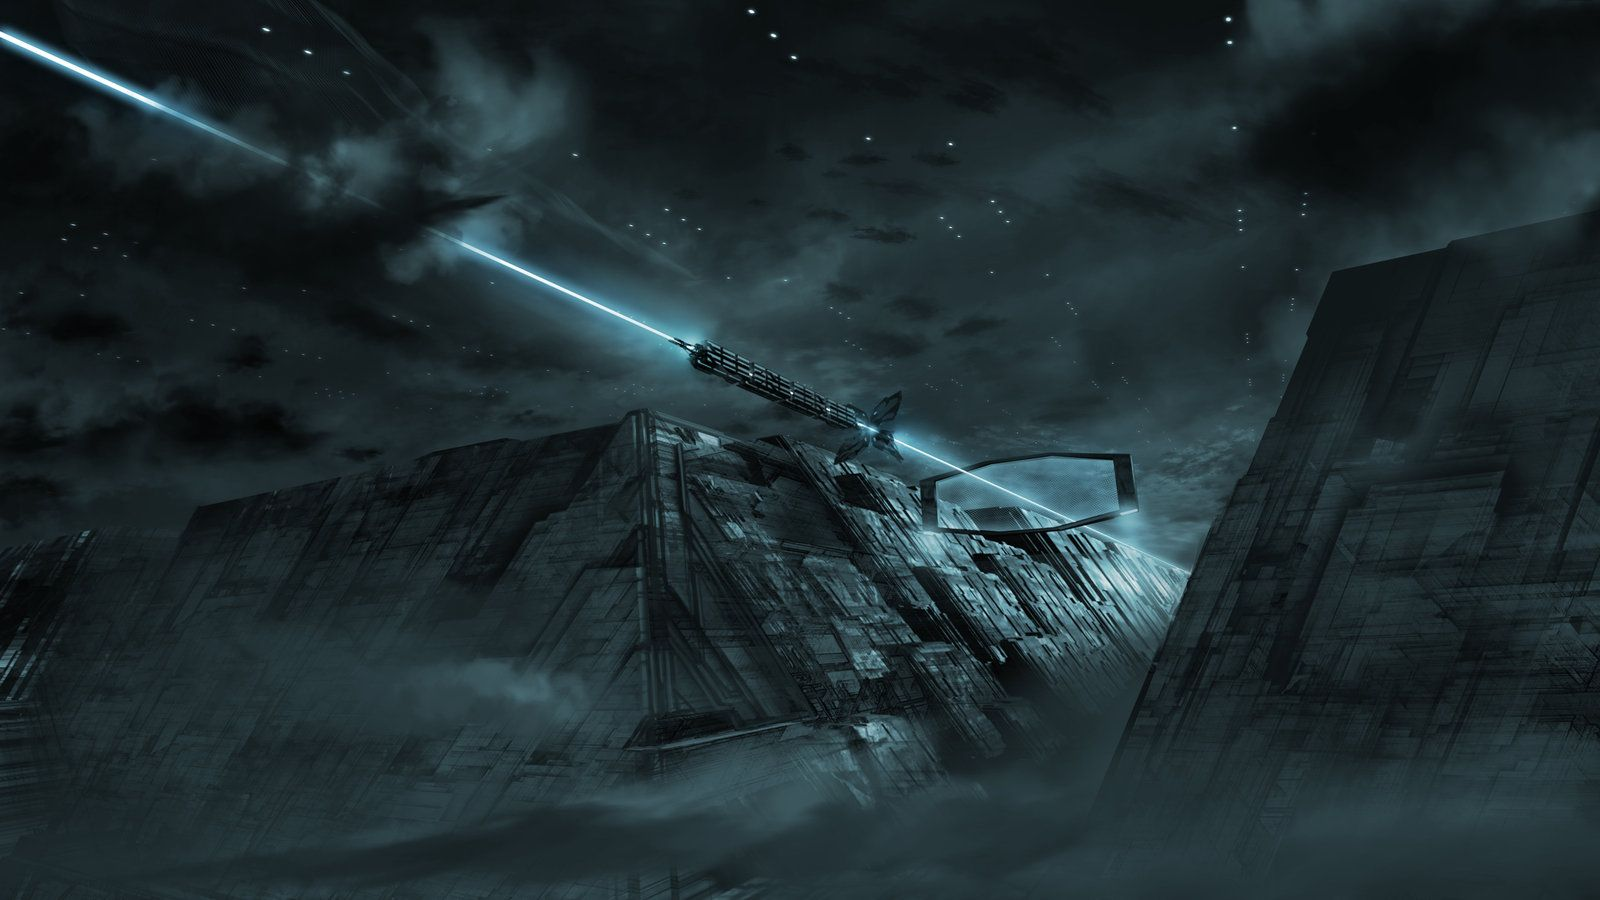 Tron Legacy Solar Sailer by vyleart David Levy ecWelcome to